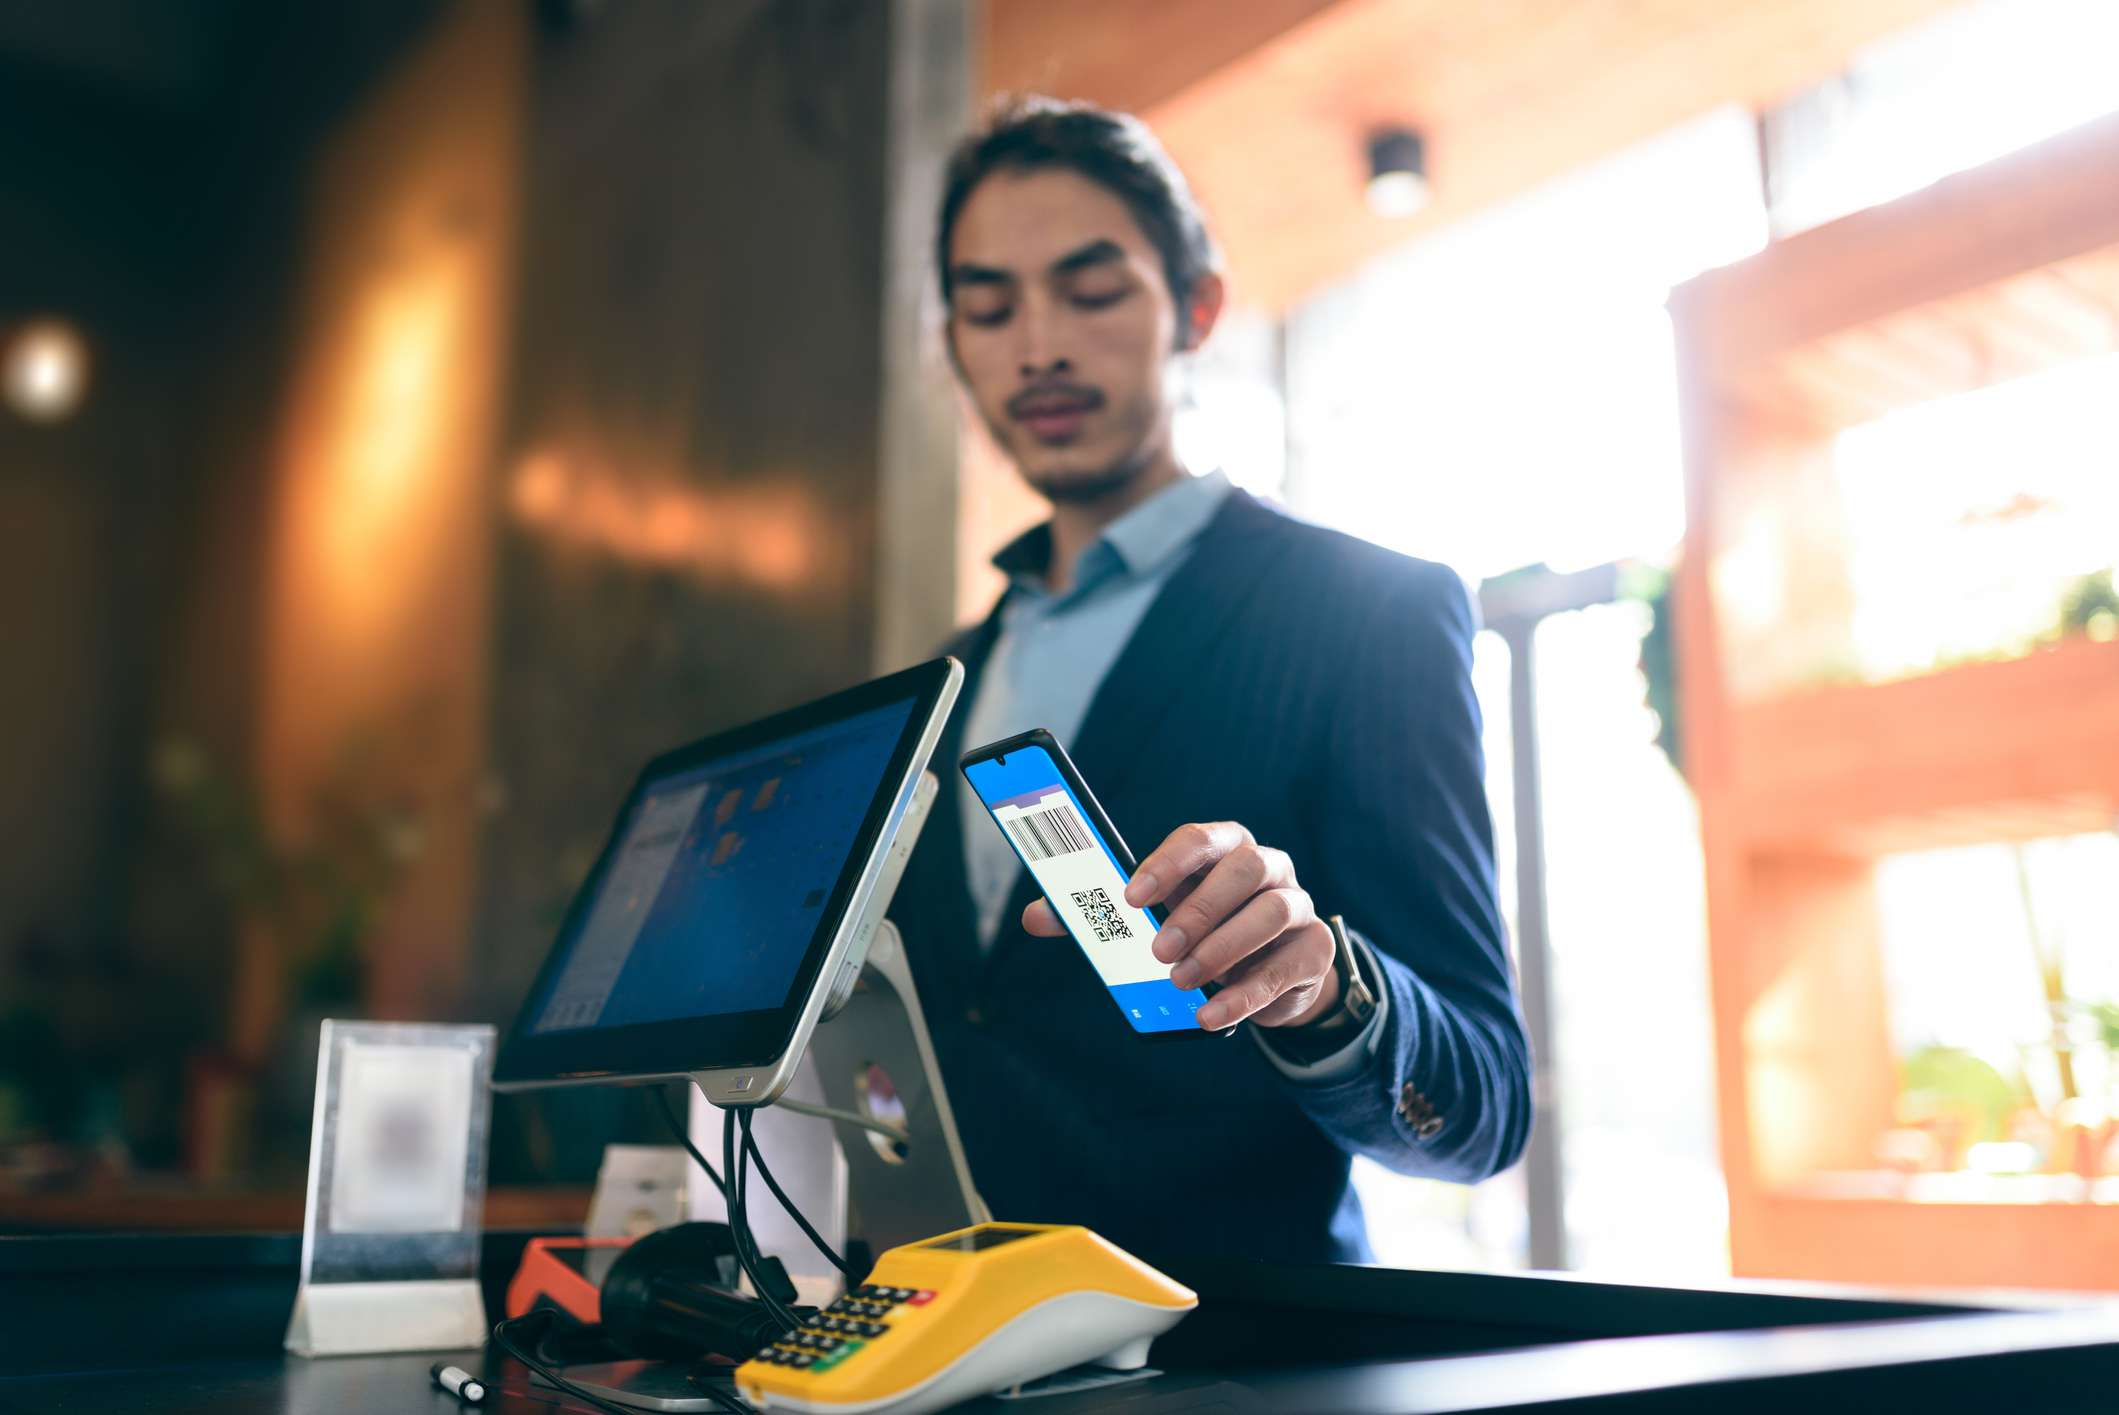 Man checking in by scanning QR code on phone